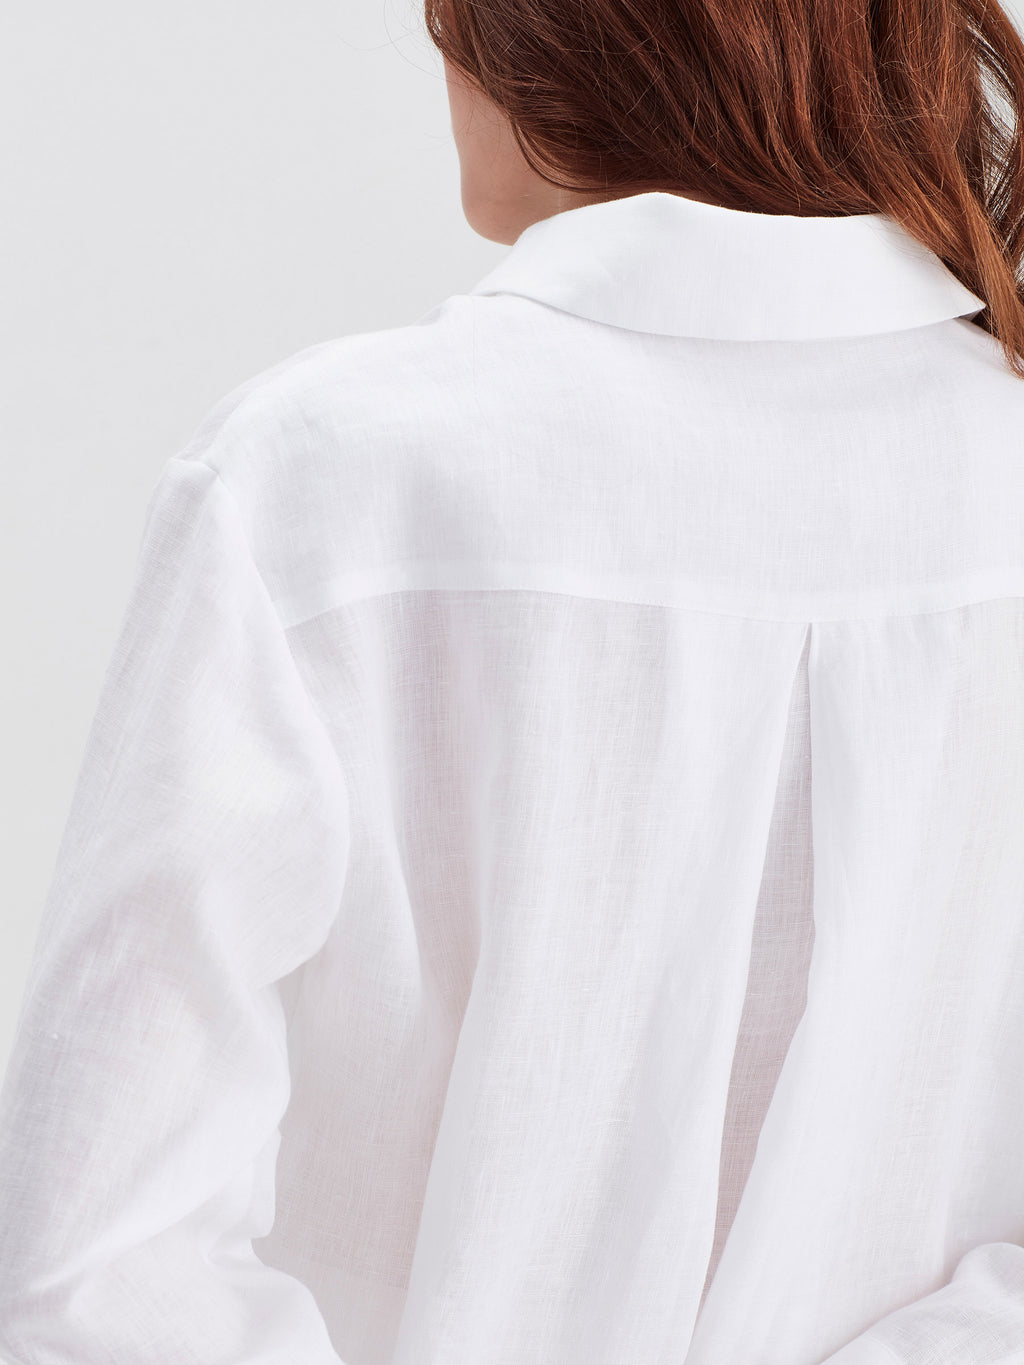 Beauden Shirt (Light Linen) White